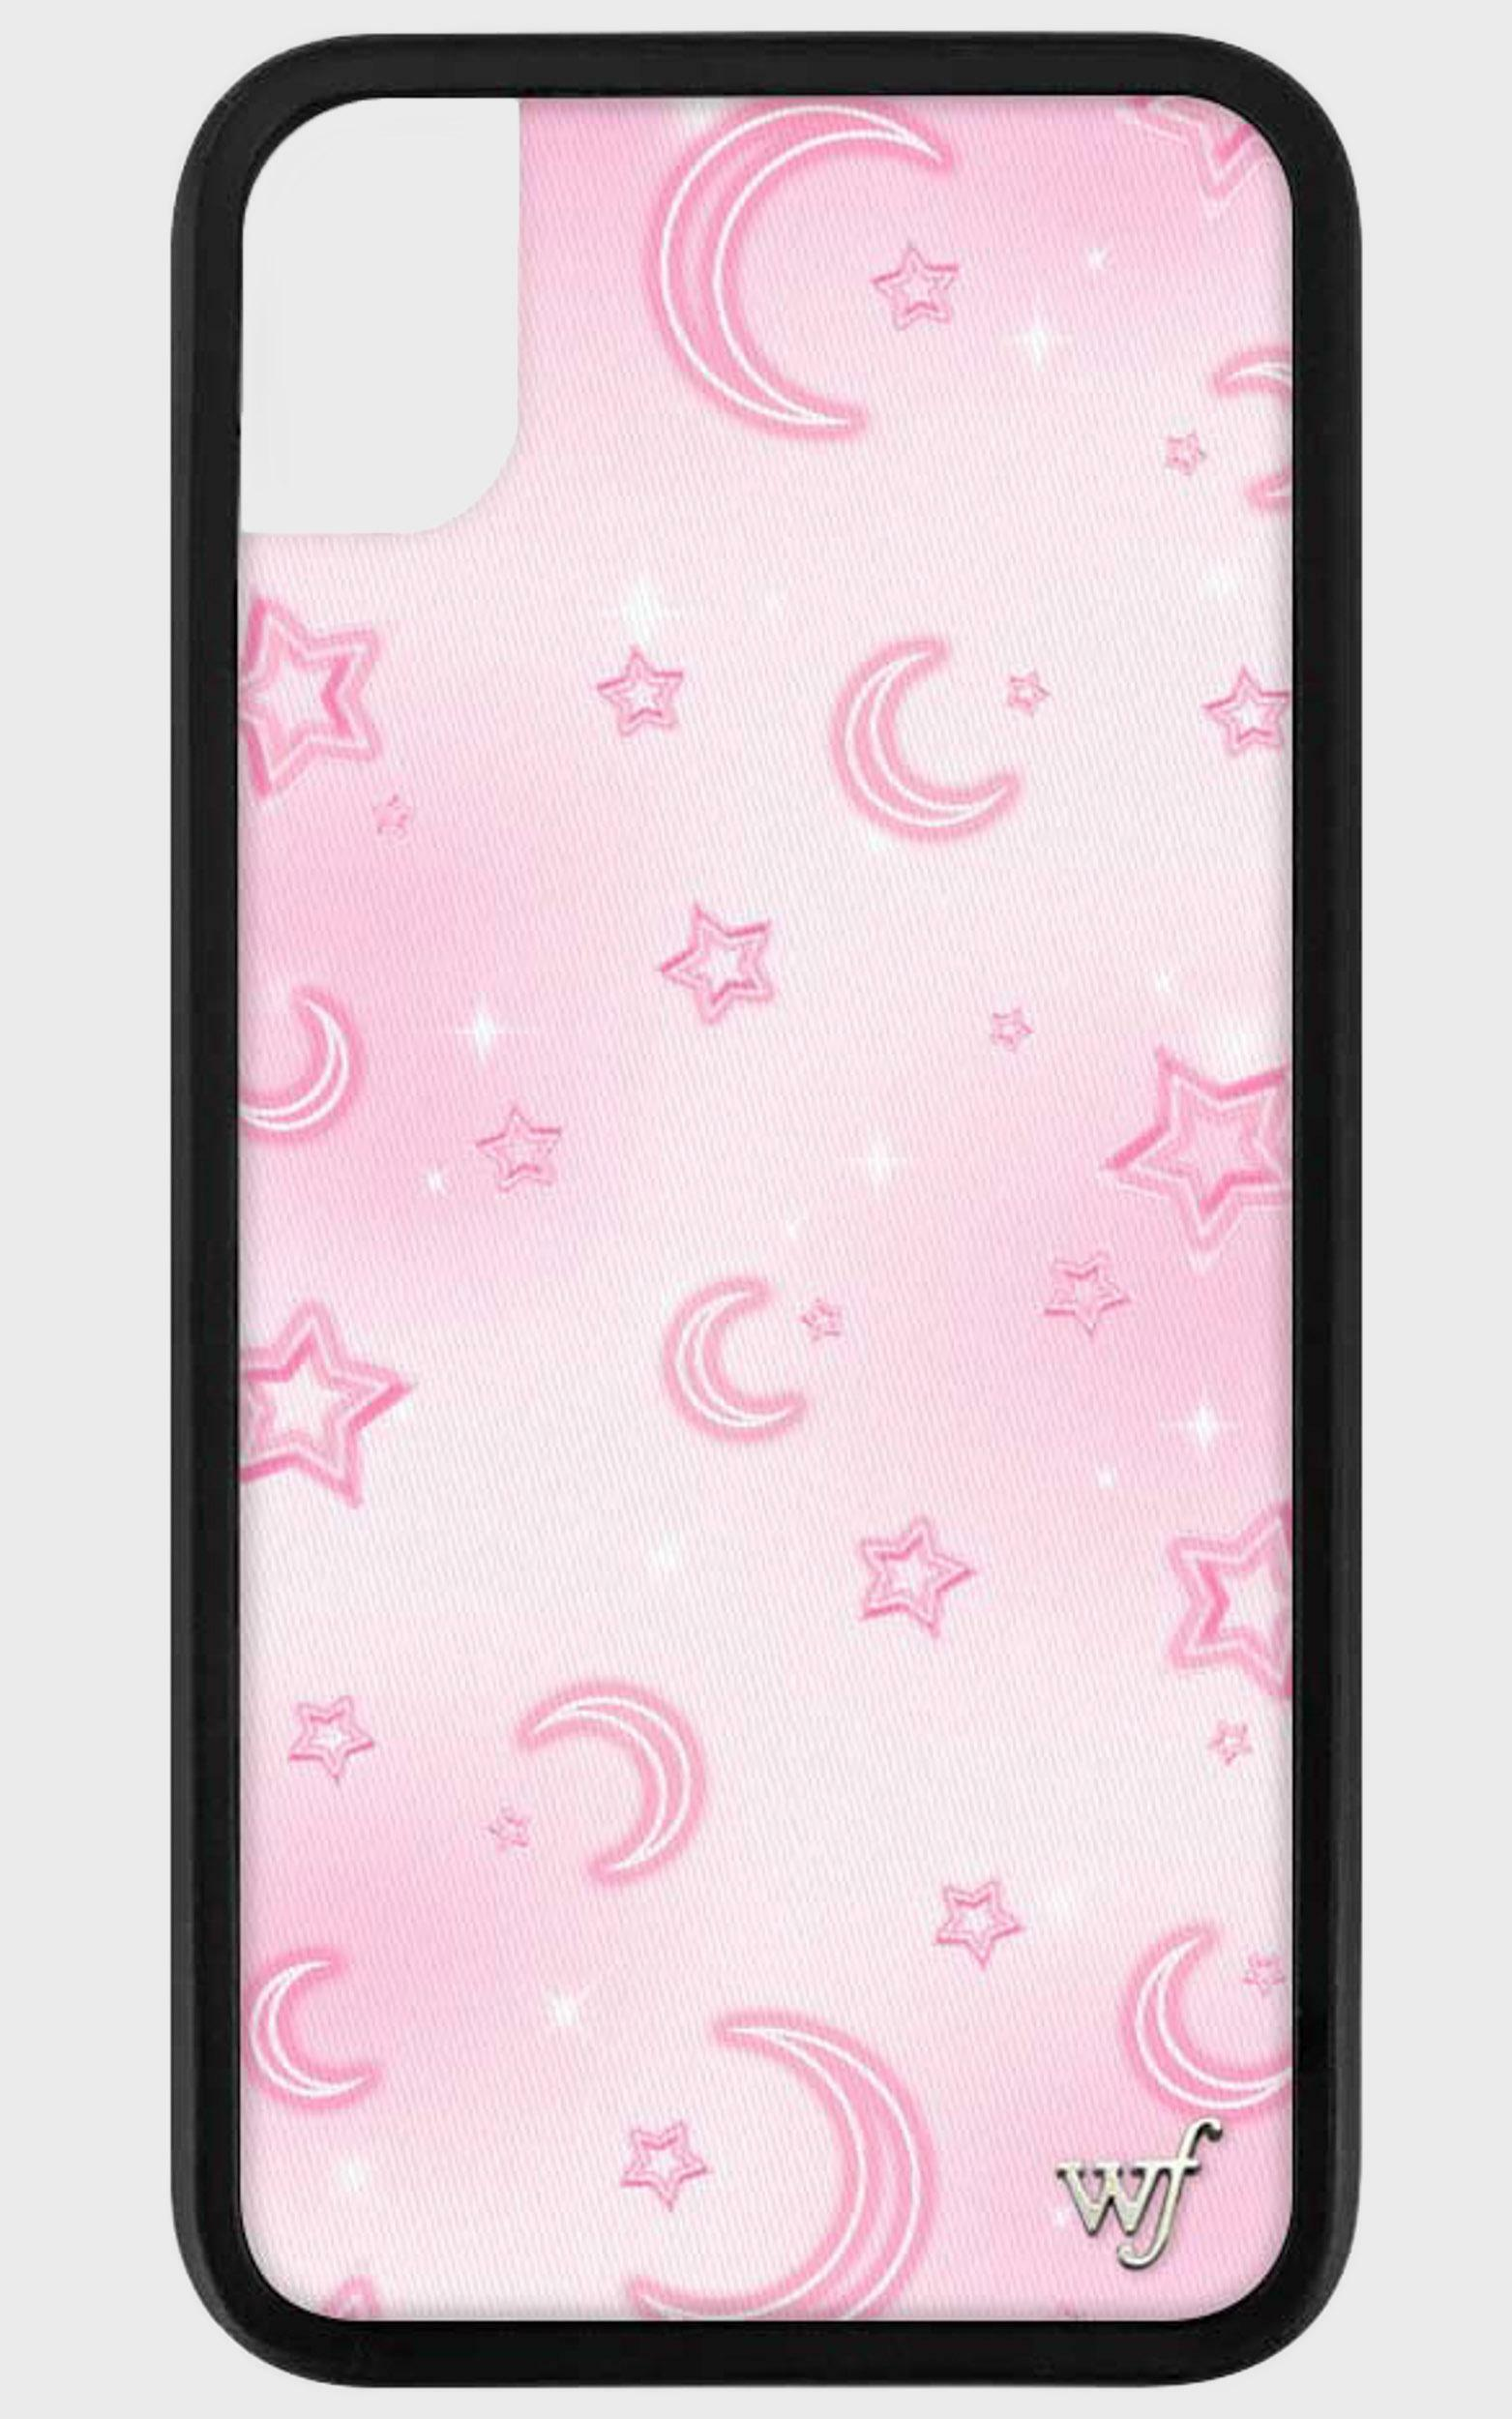 Wildflower - Iphone Case in Slumber Party - 8, PNK3, hi-res image number null